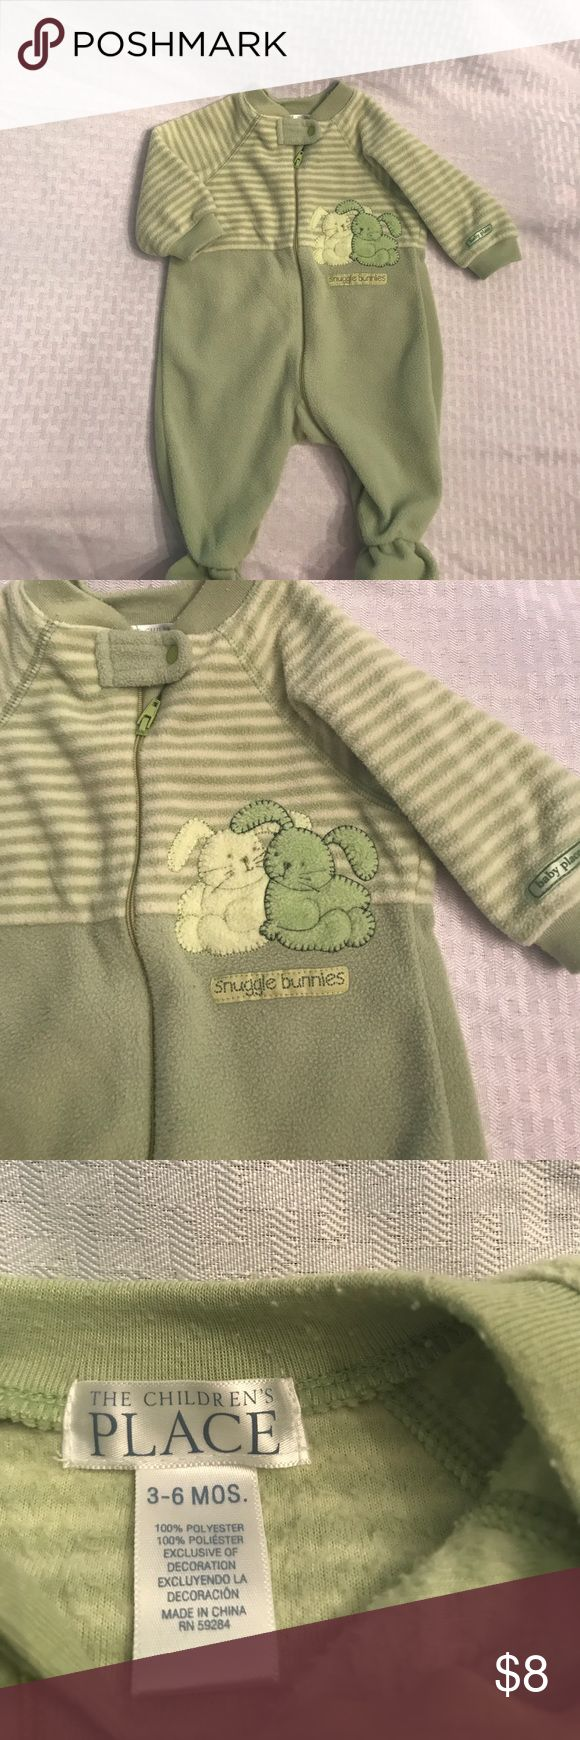 """Green striped zip up footed sleeper It'll be cold soon and your little munchkin will need something to snuggle up in. This green zip up fleece jumper has two little bunnies on the front of it with the words """"snuggle bunnies"""" underneath. Cute cute cute! The Children's Place One Pieces Footies"""